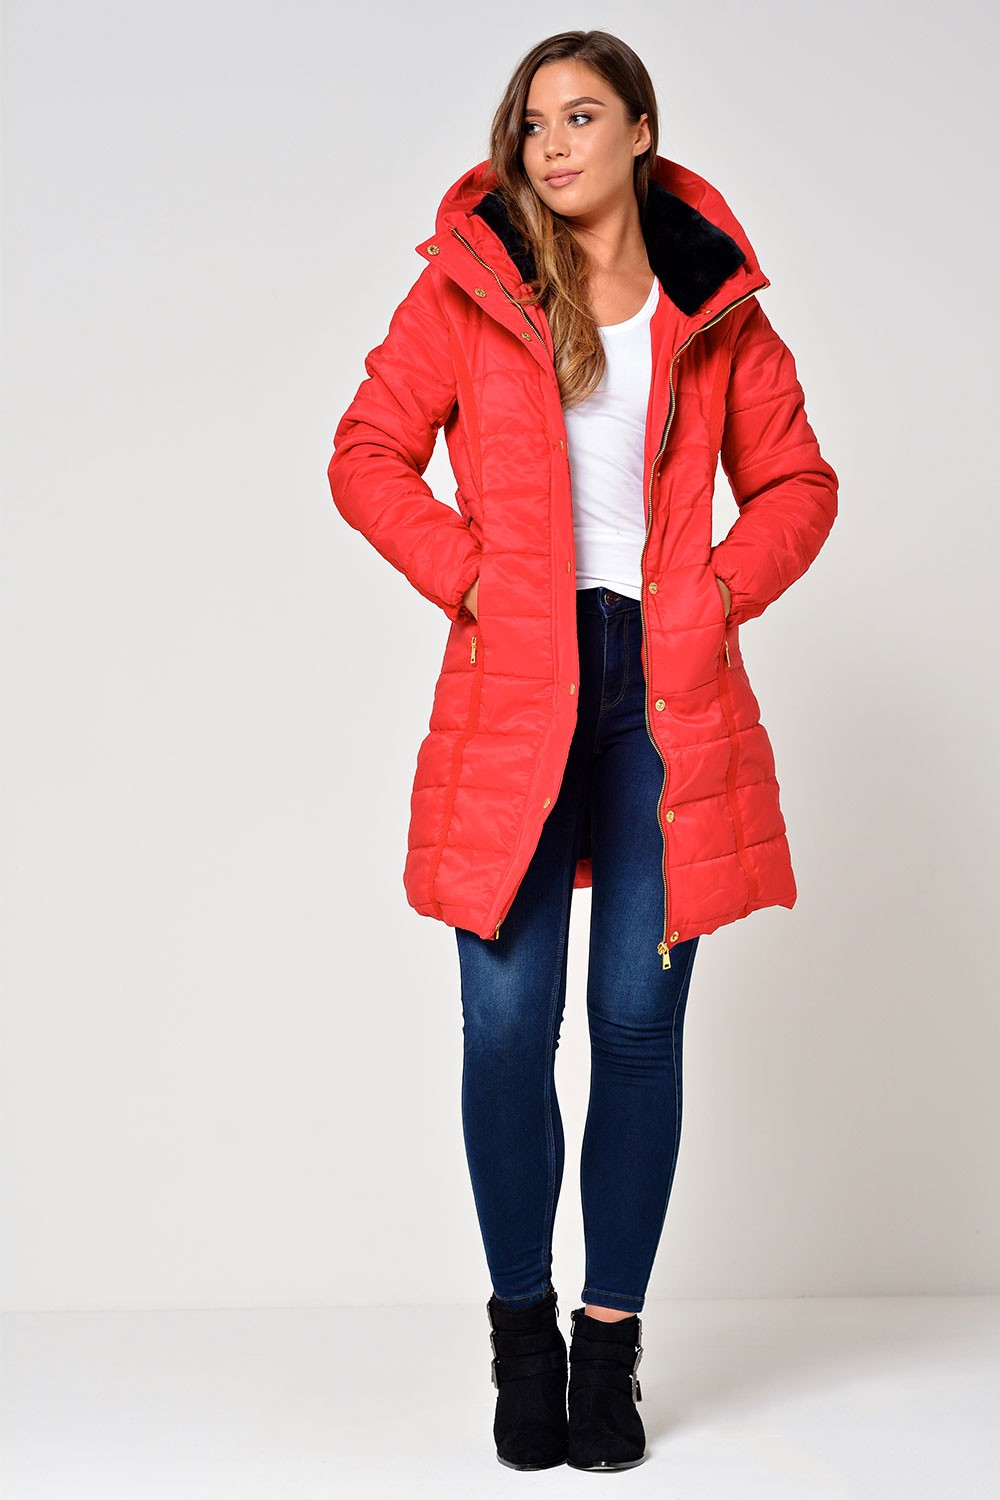 Alexi Long Belted Puffer Jacket in Red | iCLOTHING